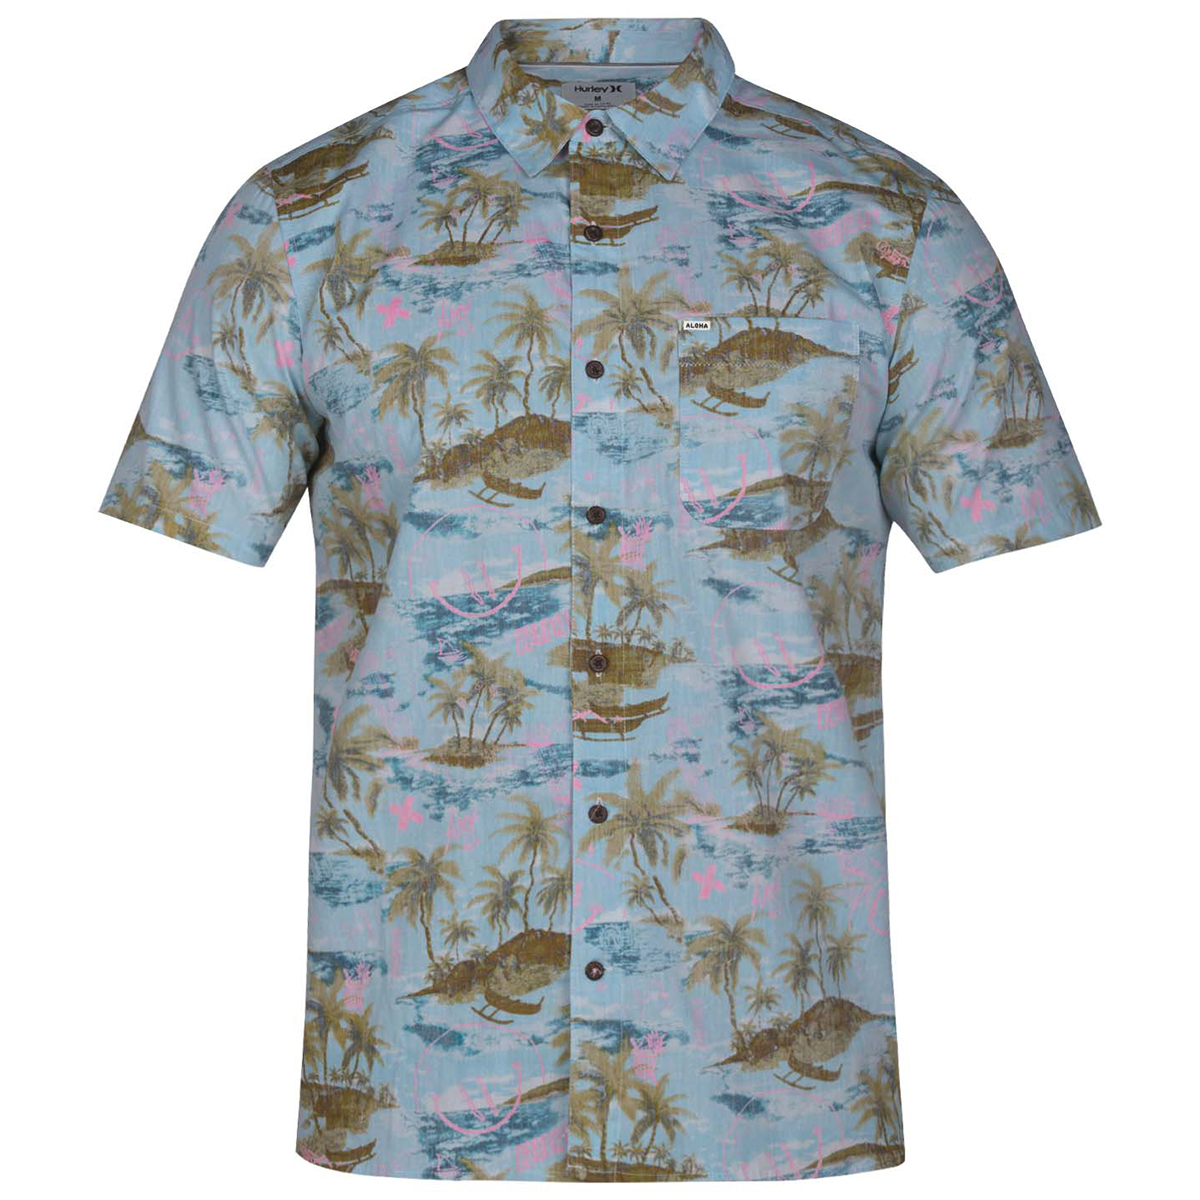 Hurley Young Men's Outrigger Woven Short-Sleeve Shirt - Blue, M